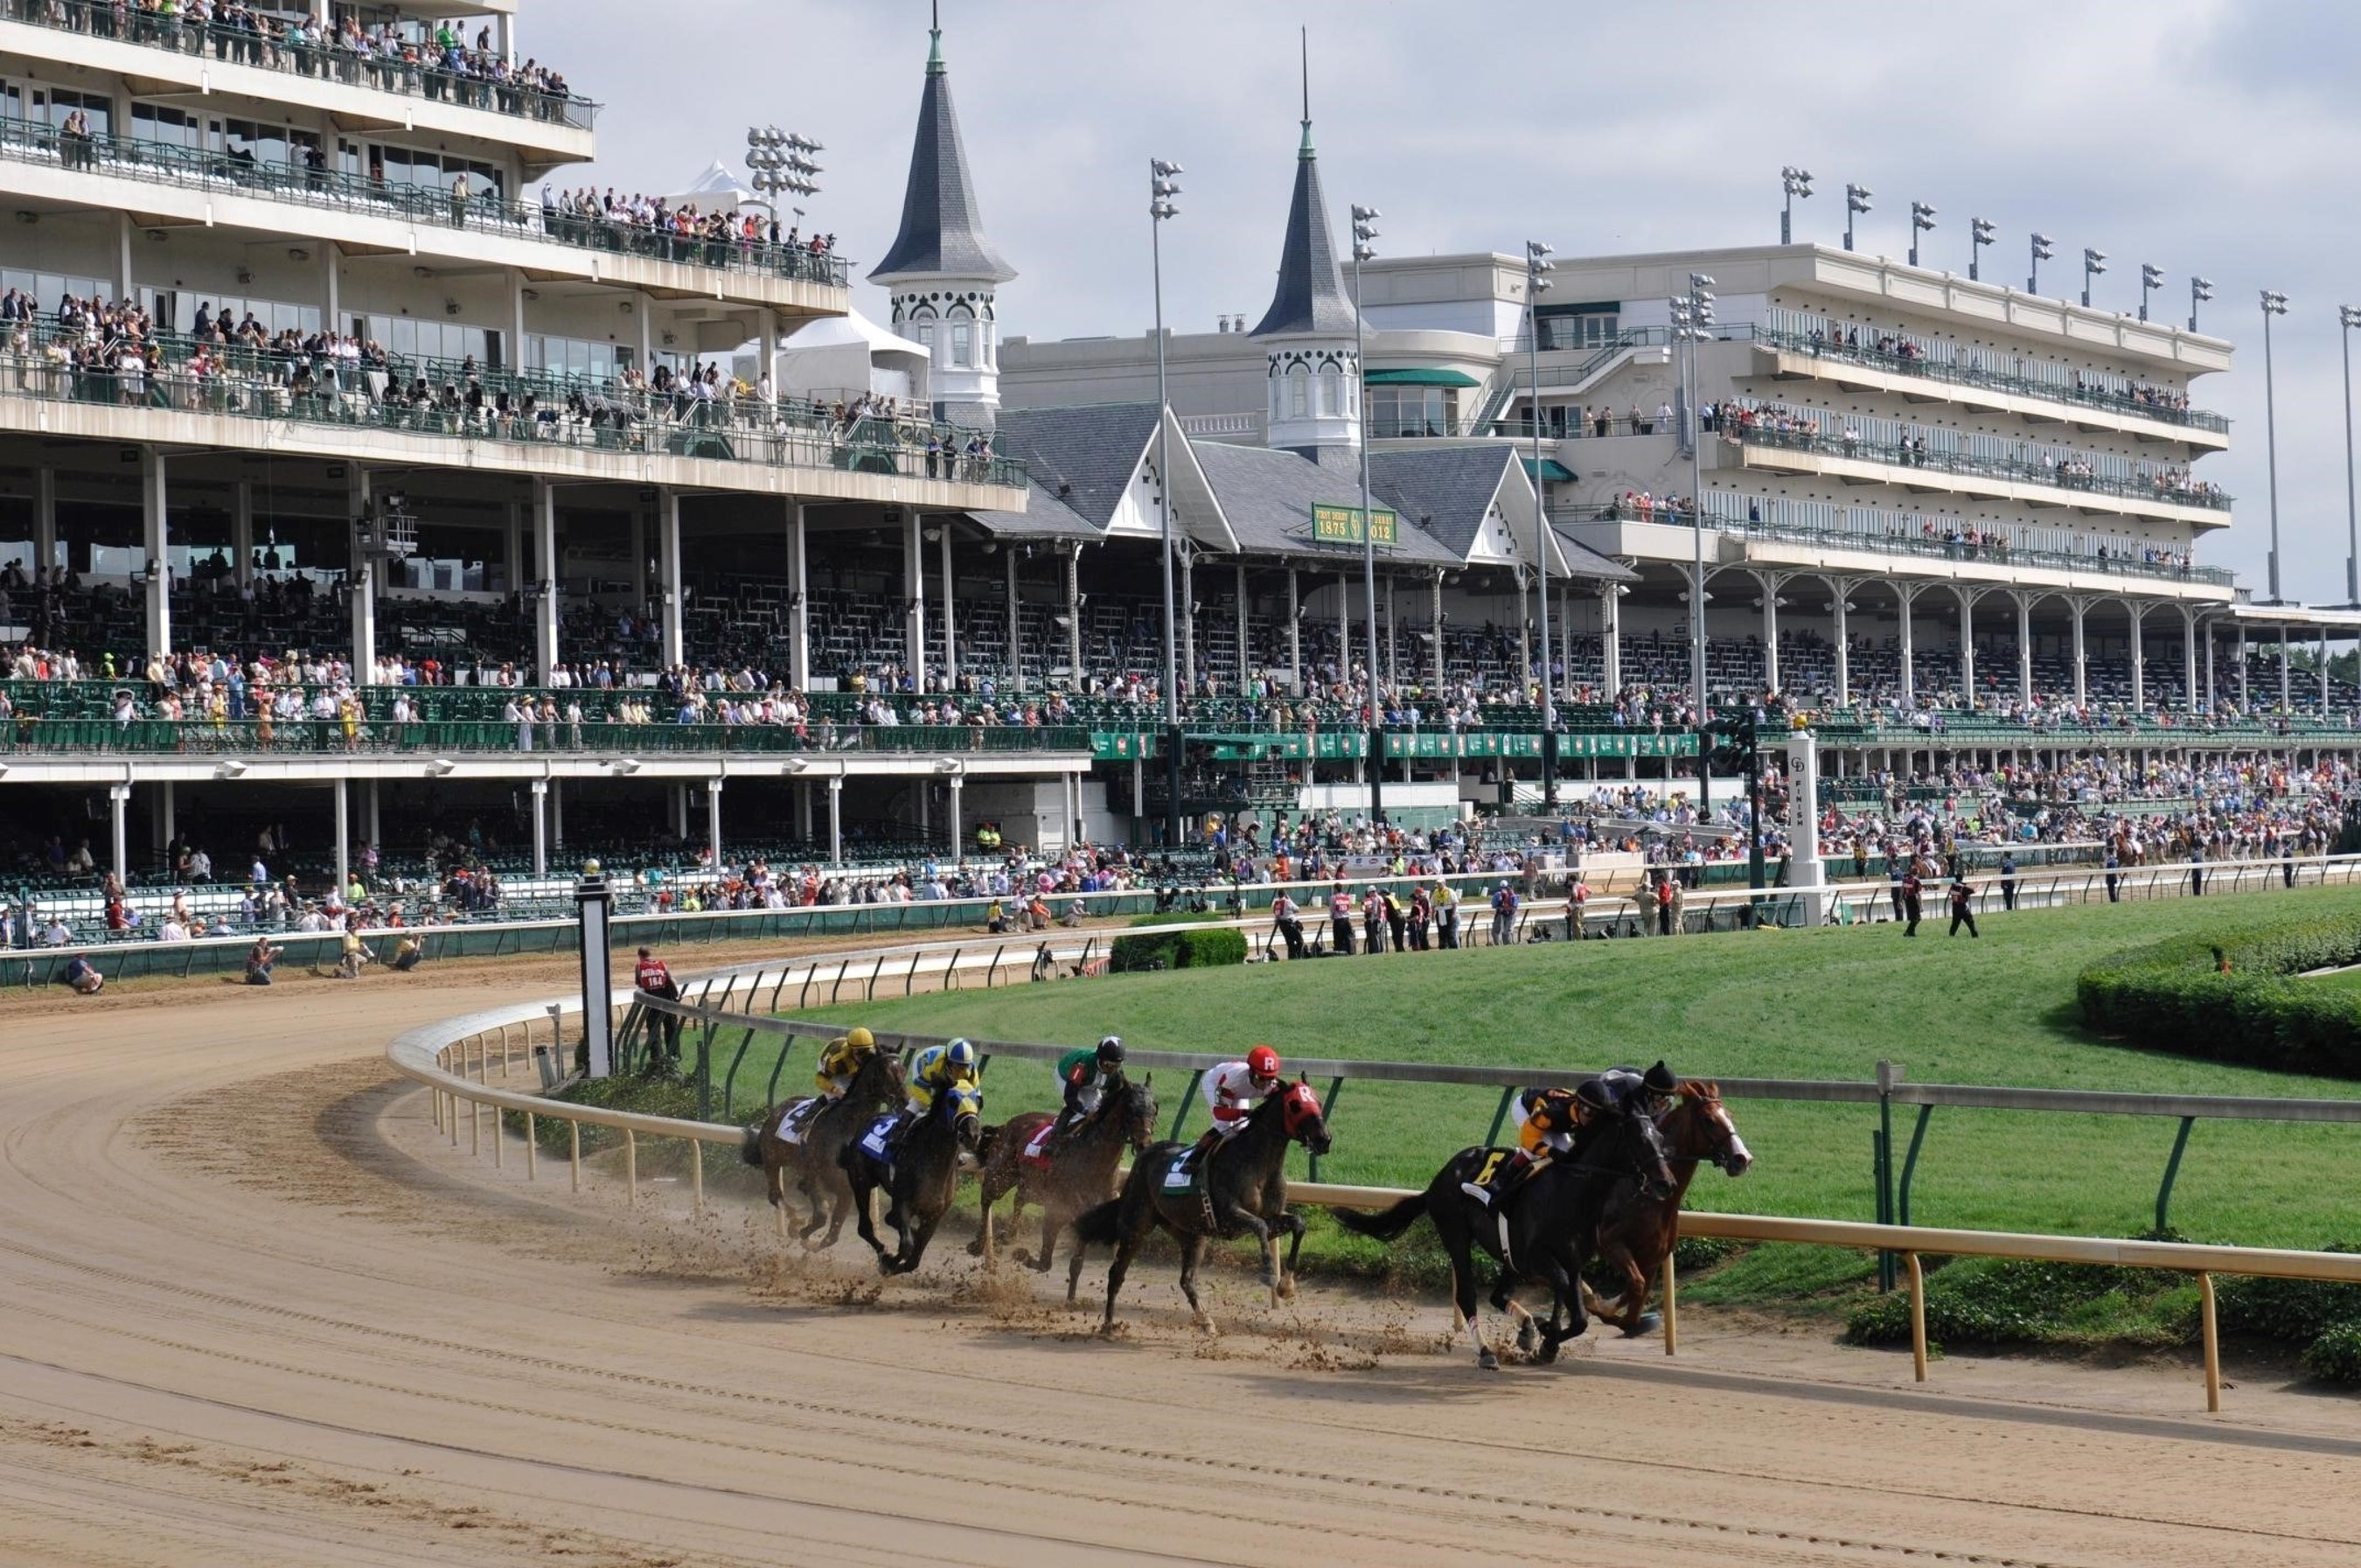 NBC Sports Group and NextVR to Present 2016 Kentucky Derby Live in Virtual Reality for First Time